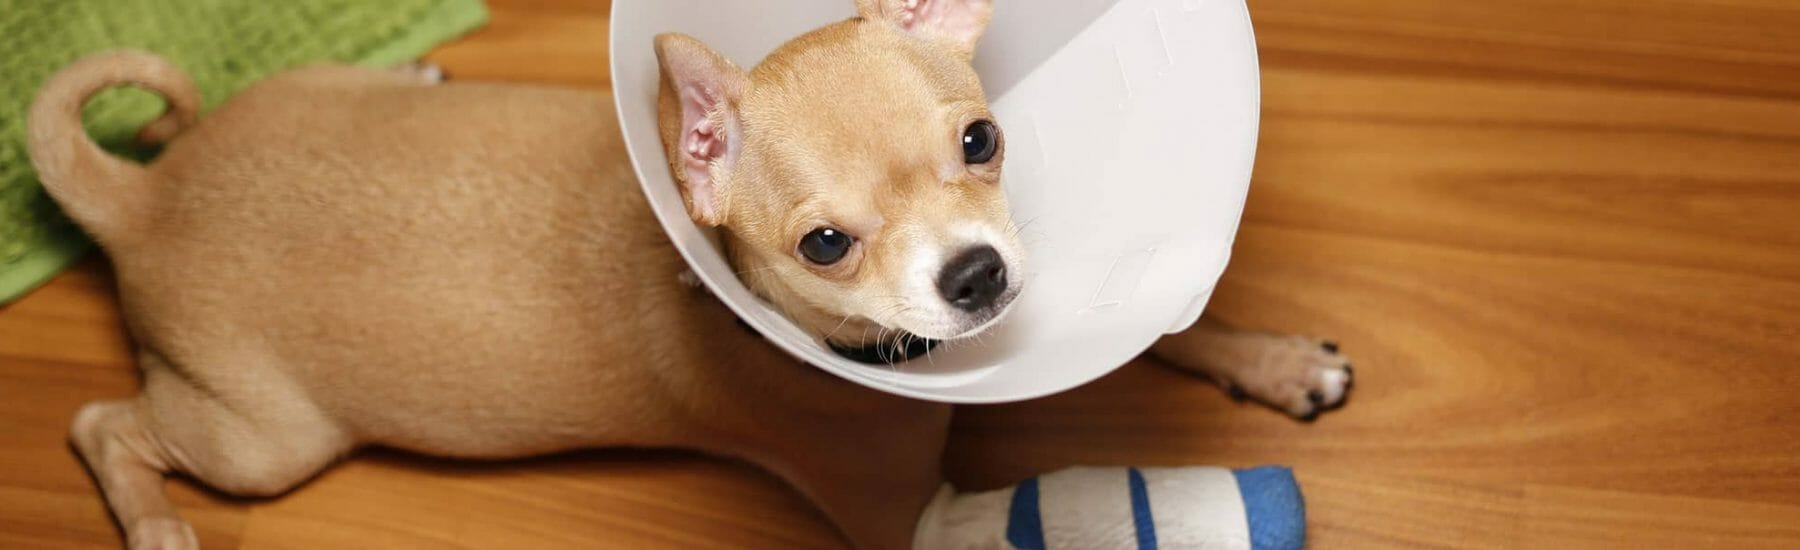 Dog with a bandaged arm and wearing a cone